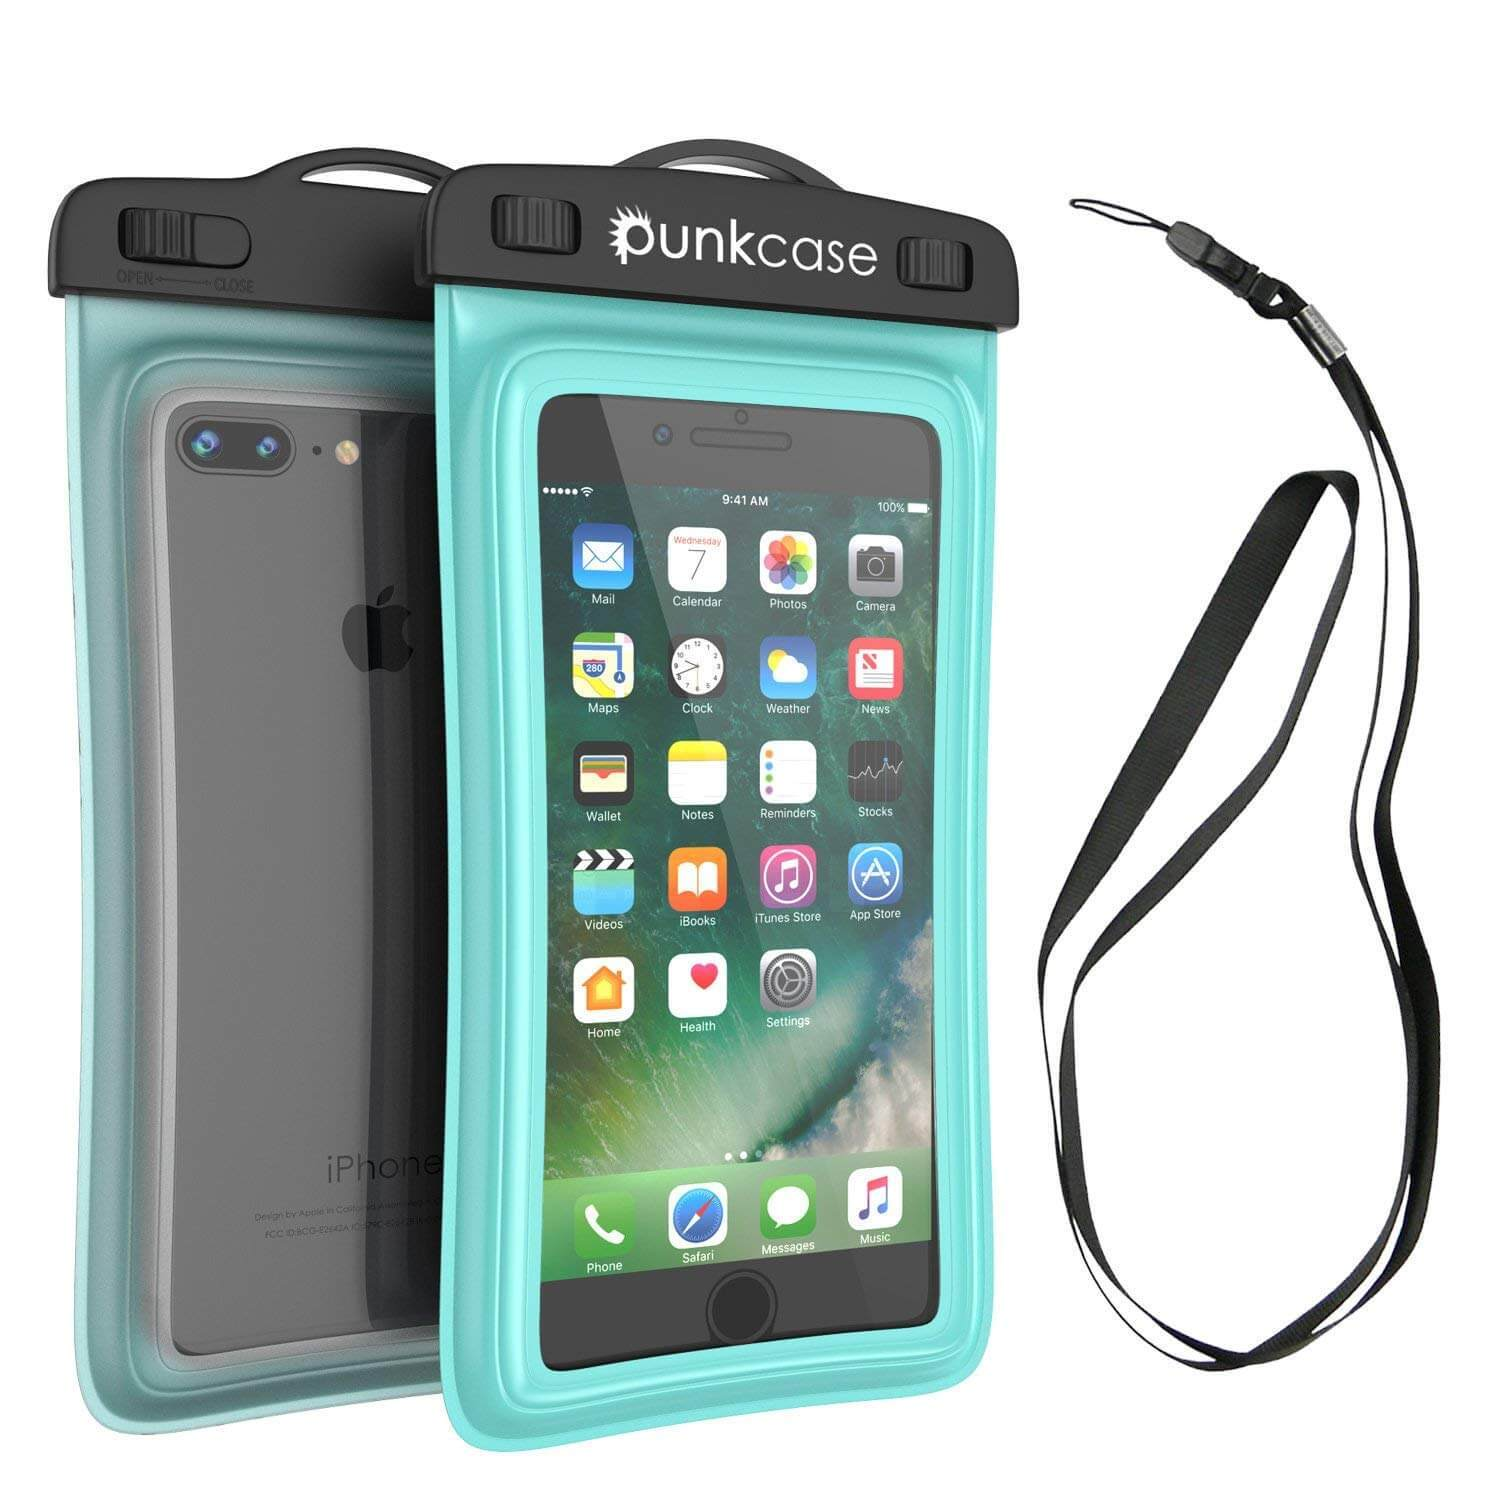 new arrival 63315 eee54 Waterproof Phone Pouch, PunkBag Universal Floating Dry Case Bag for most  Cell Phones [Teal]